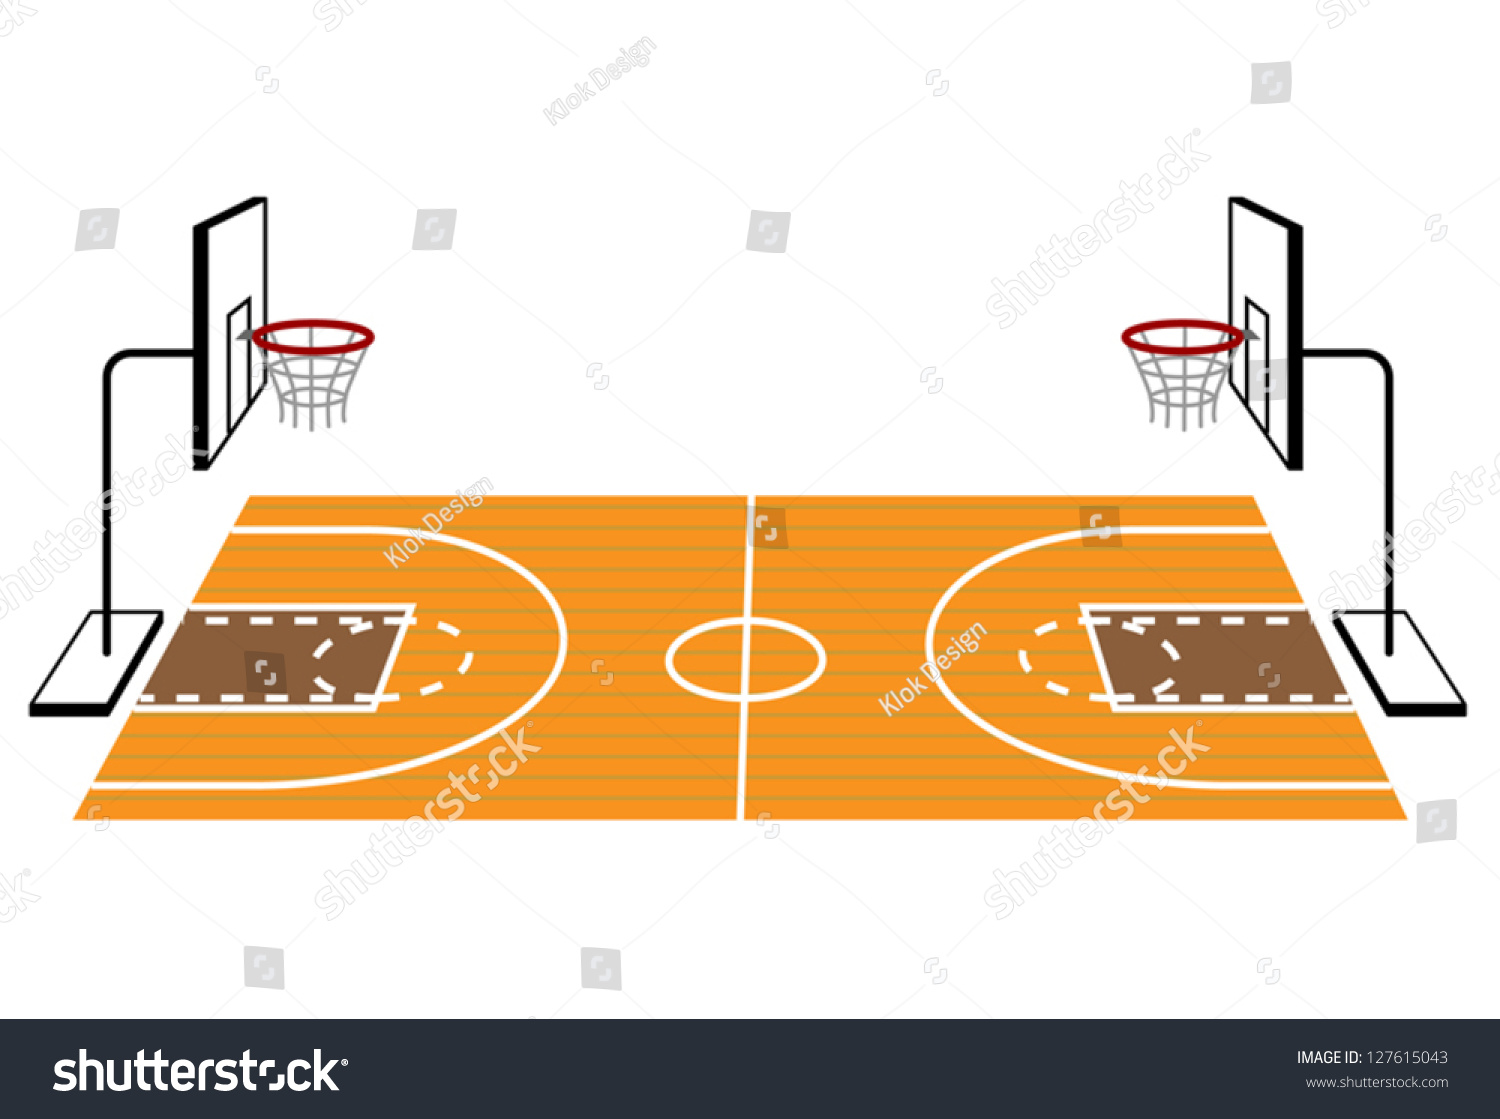 Basketball court stock vector 127615043 shutterstock for Basketball gym dimensions